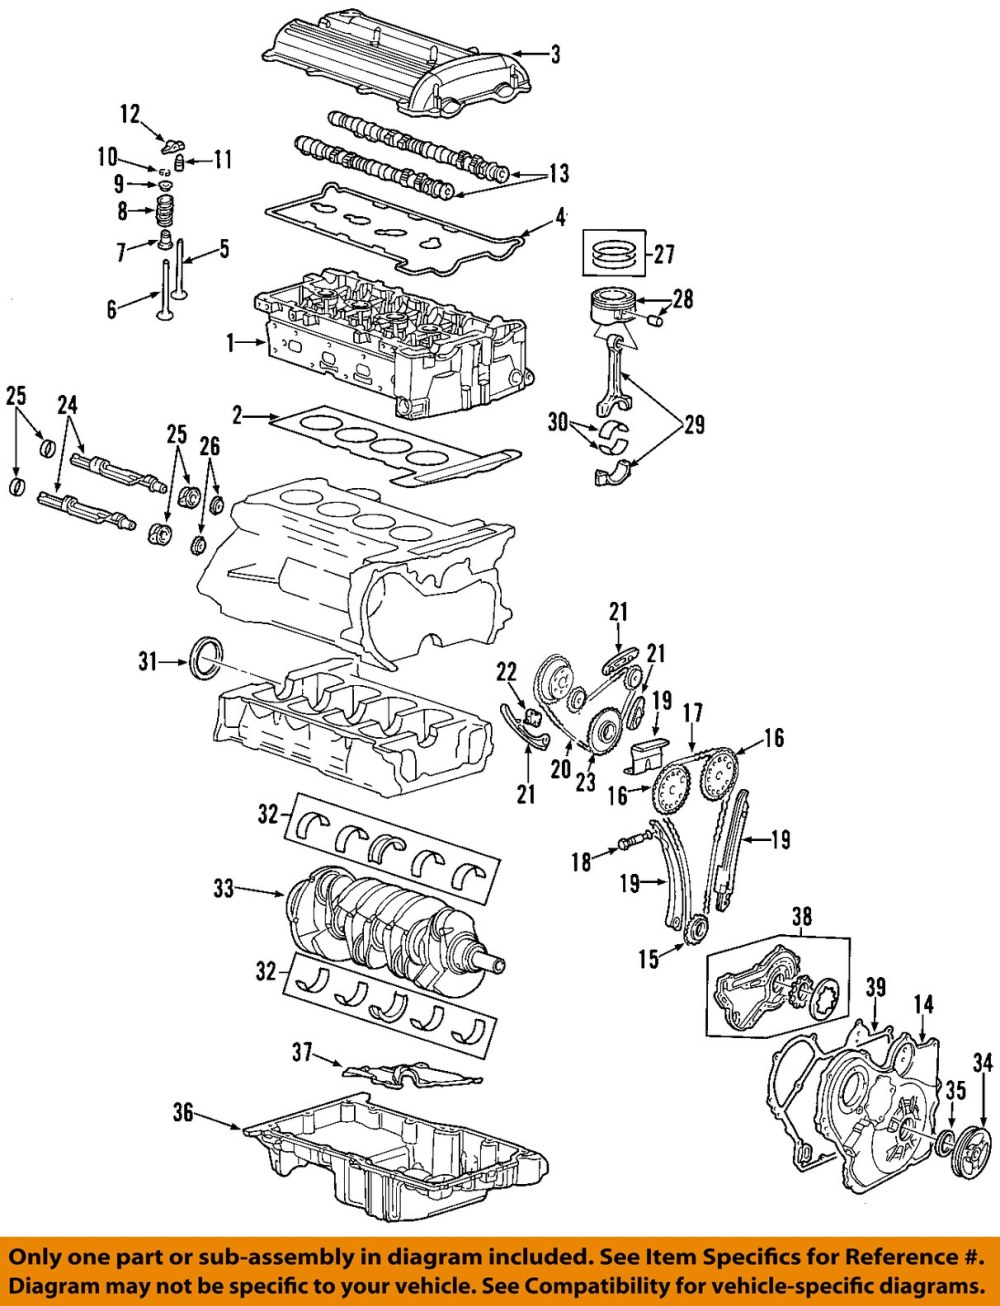 medium resolution of saturn l200 engine diagram wiring diagram sample 2002 saturn l200 engine diagram 2002 saturn l200 engine diagram